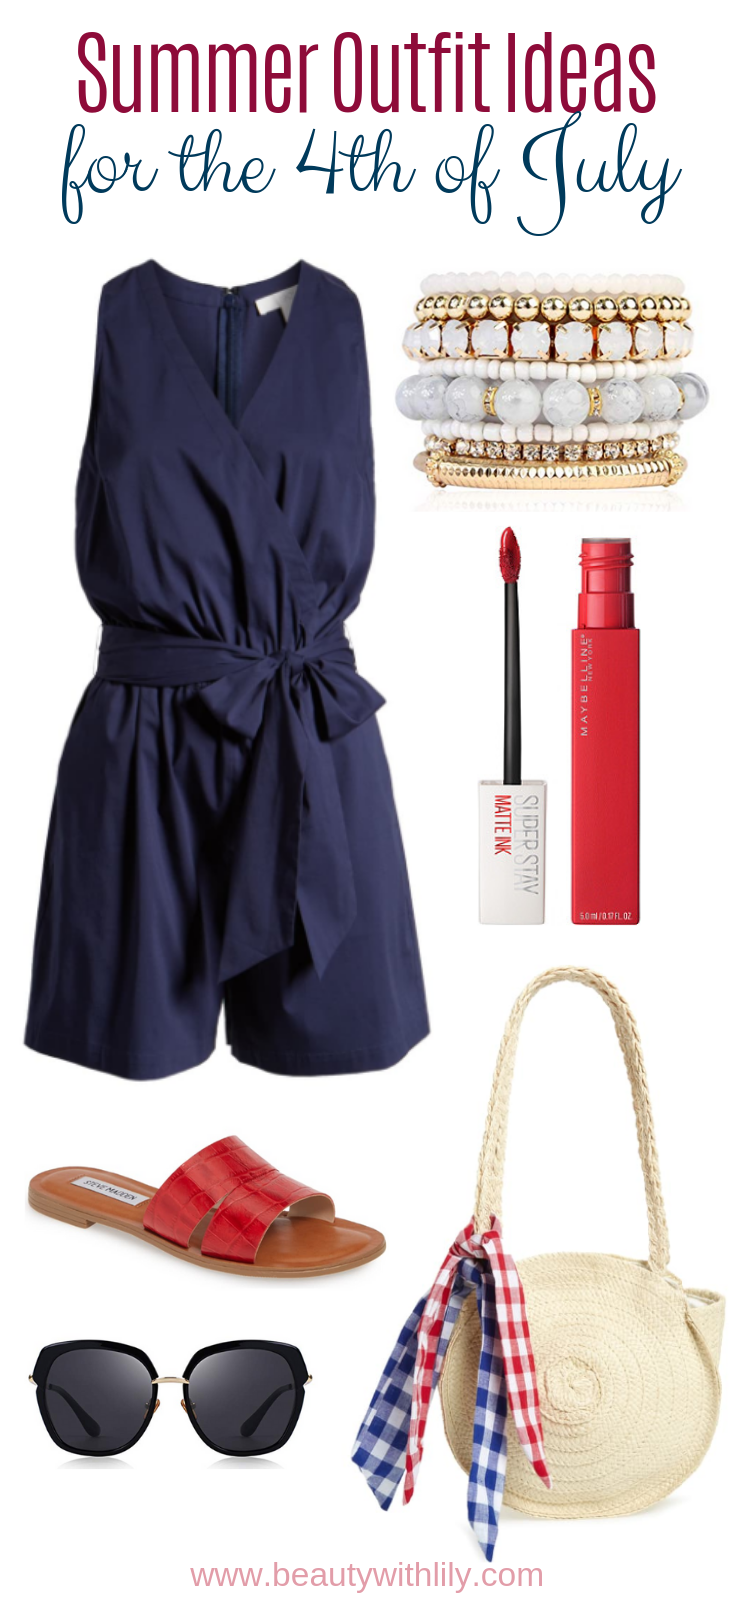 4th of July Outfit Inspiration // July 4th Fashion // Red White & Blue Outfits // Patriotic Outfit Ideas // Summer Outfit Ideas   Beauty With Lily